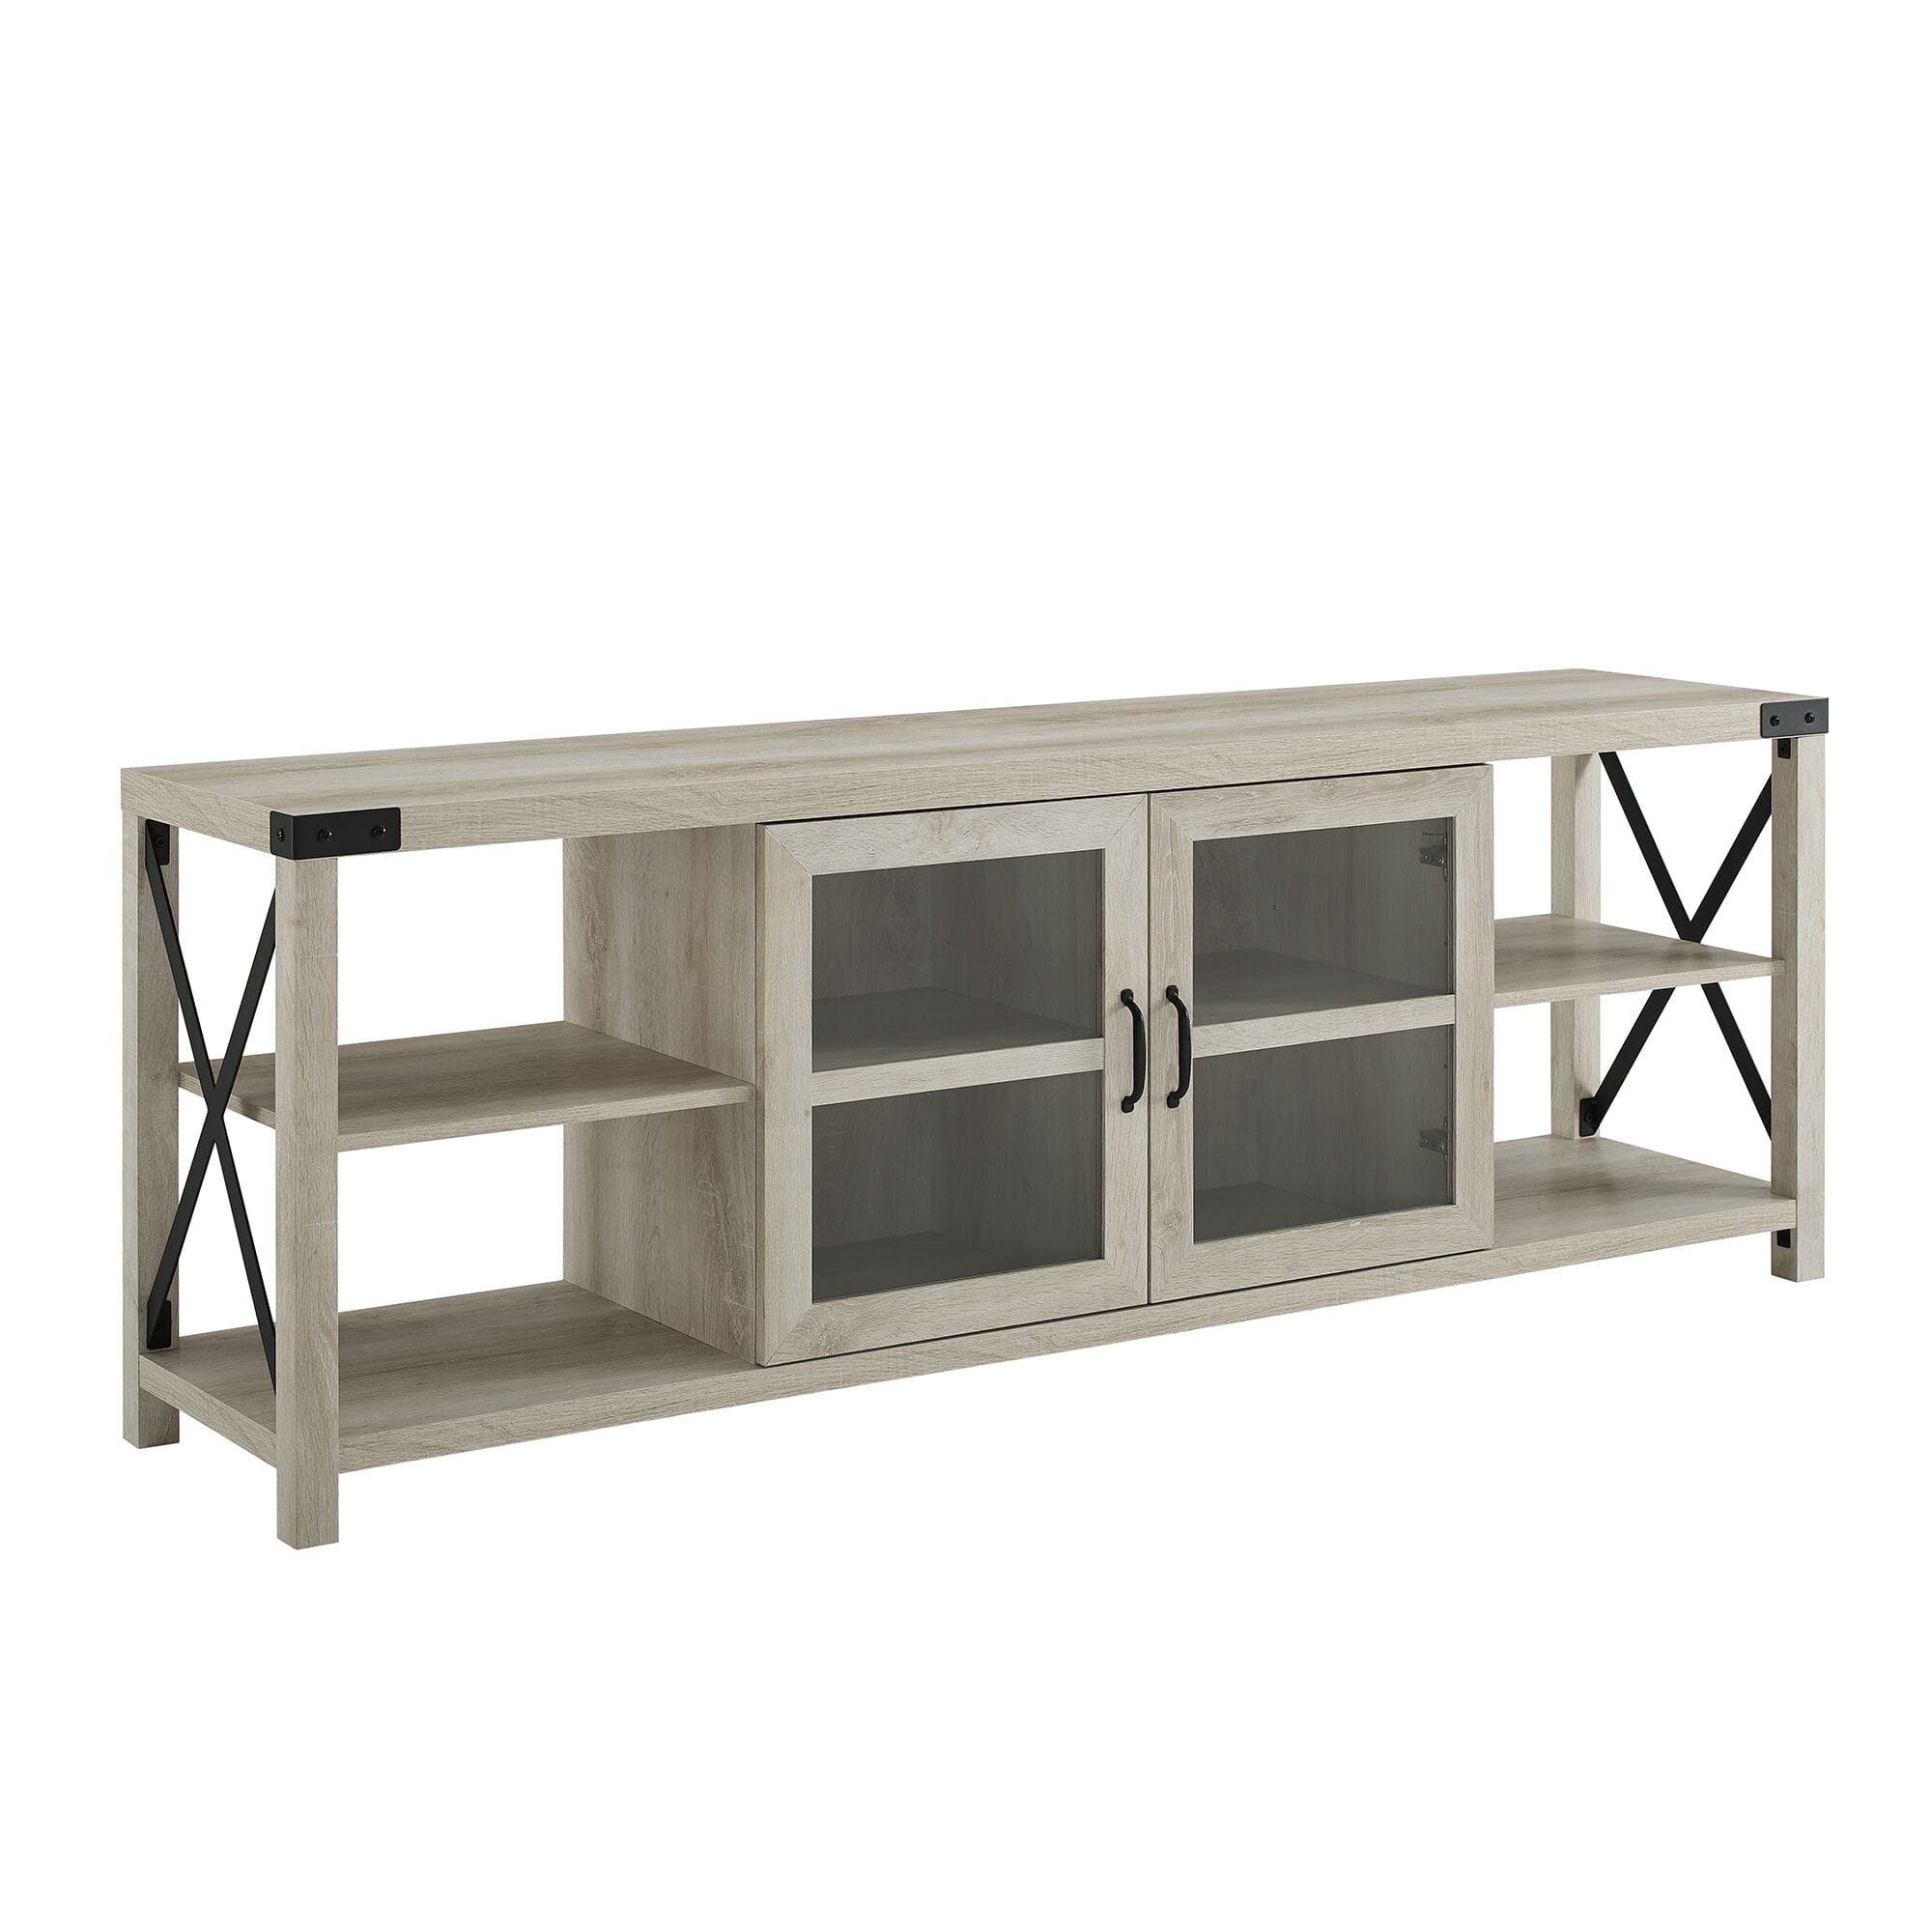 70 Inch Farmhouse Metal X Tv Stand – White Oakwalker Intended For Most Recent Brass Effect Wide Tv Stands (View 11 of 14)